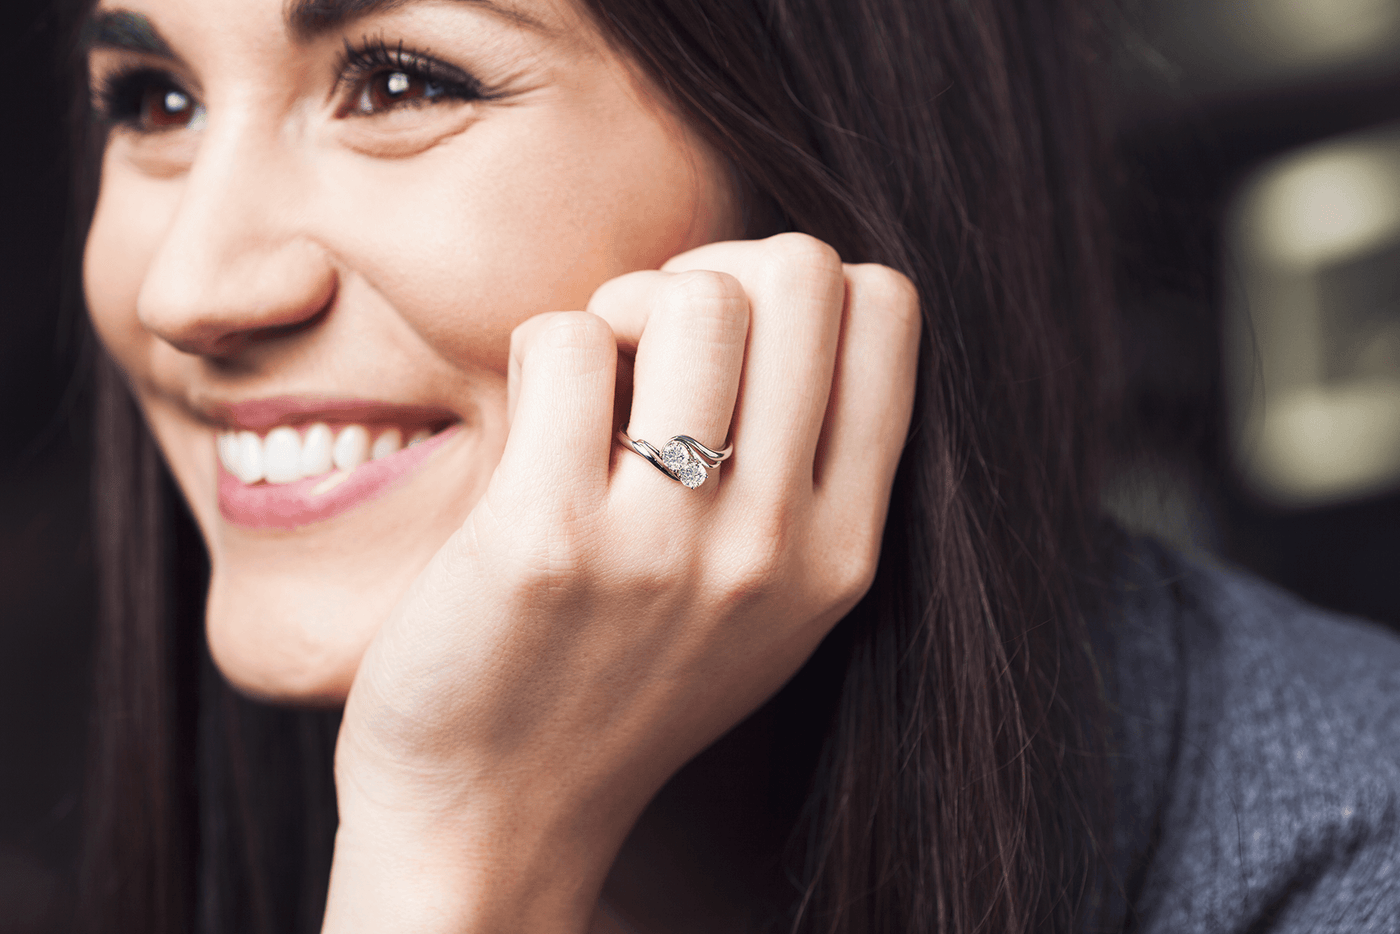 The Latest Trends in Engagement Rings